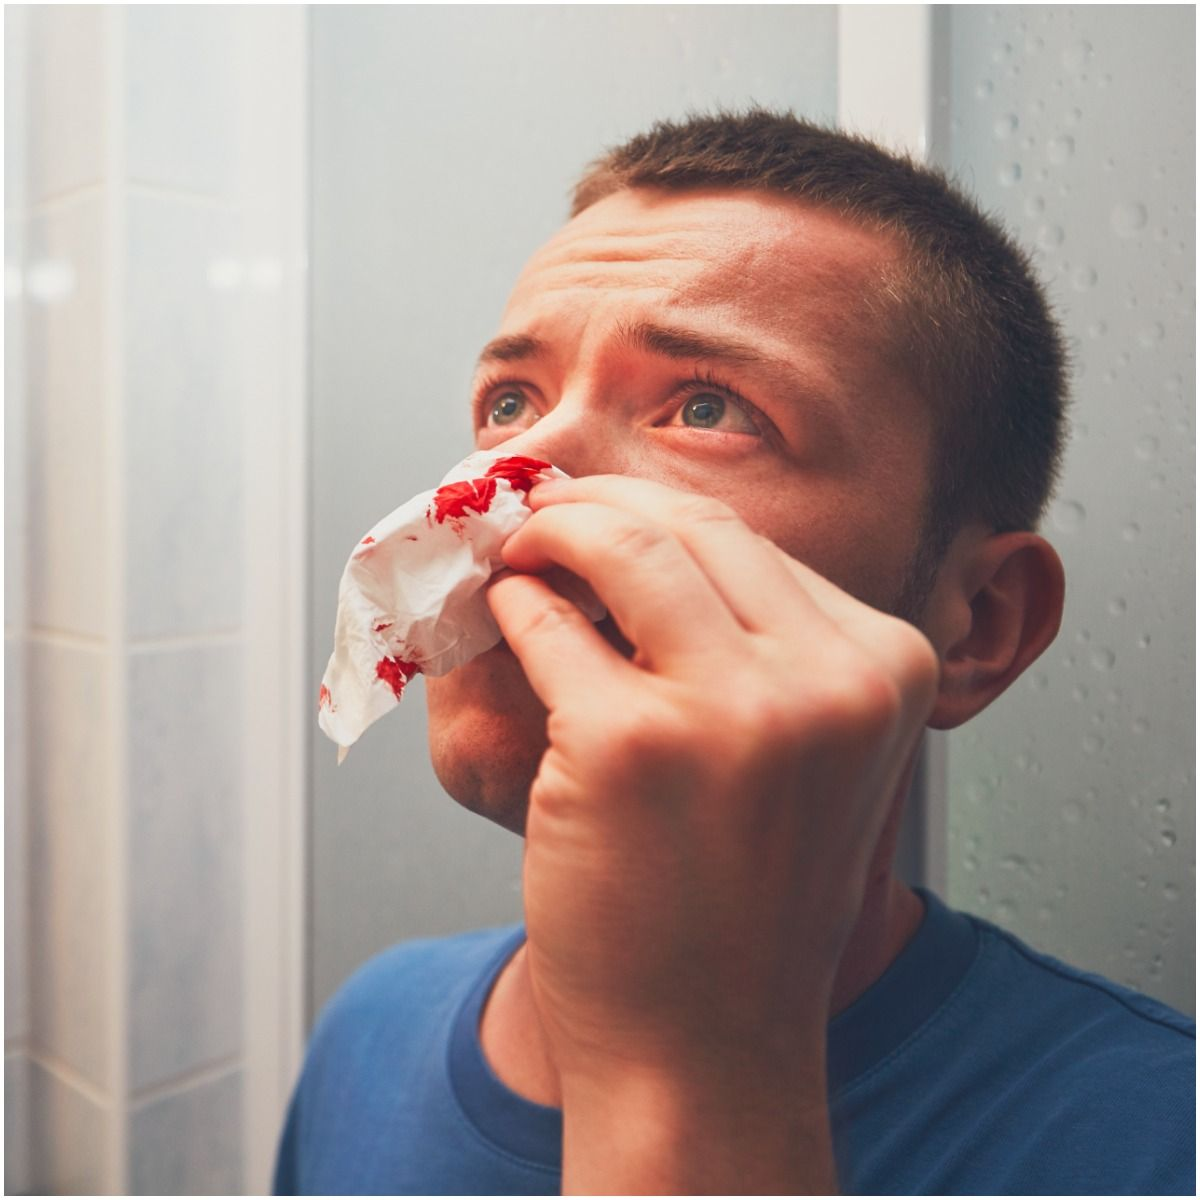 First Aid Management For Nosebleeds